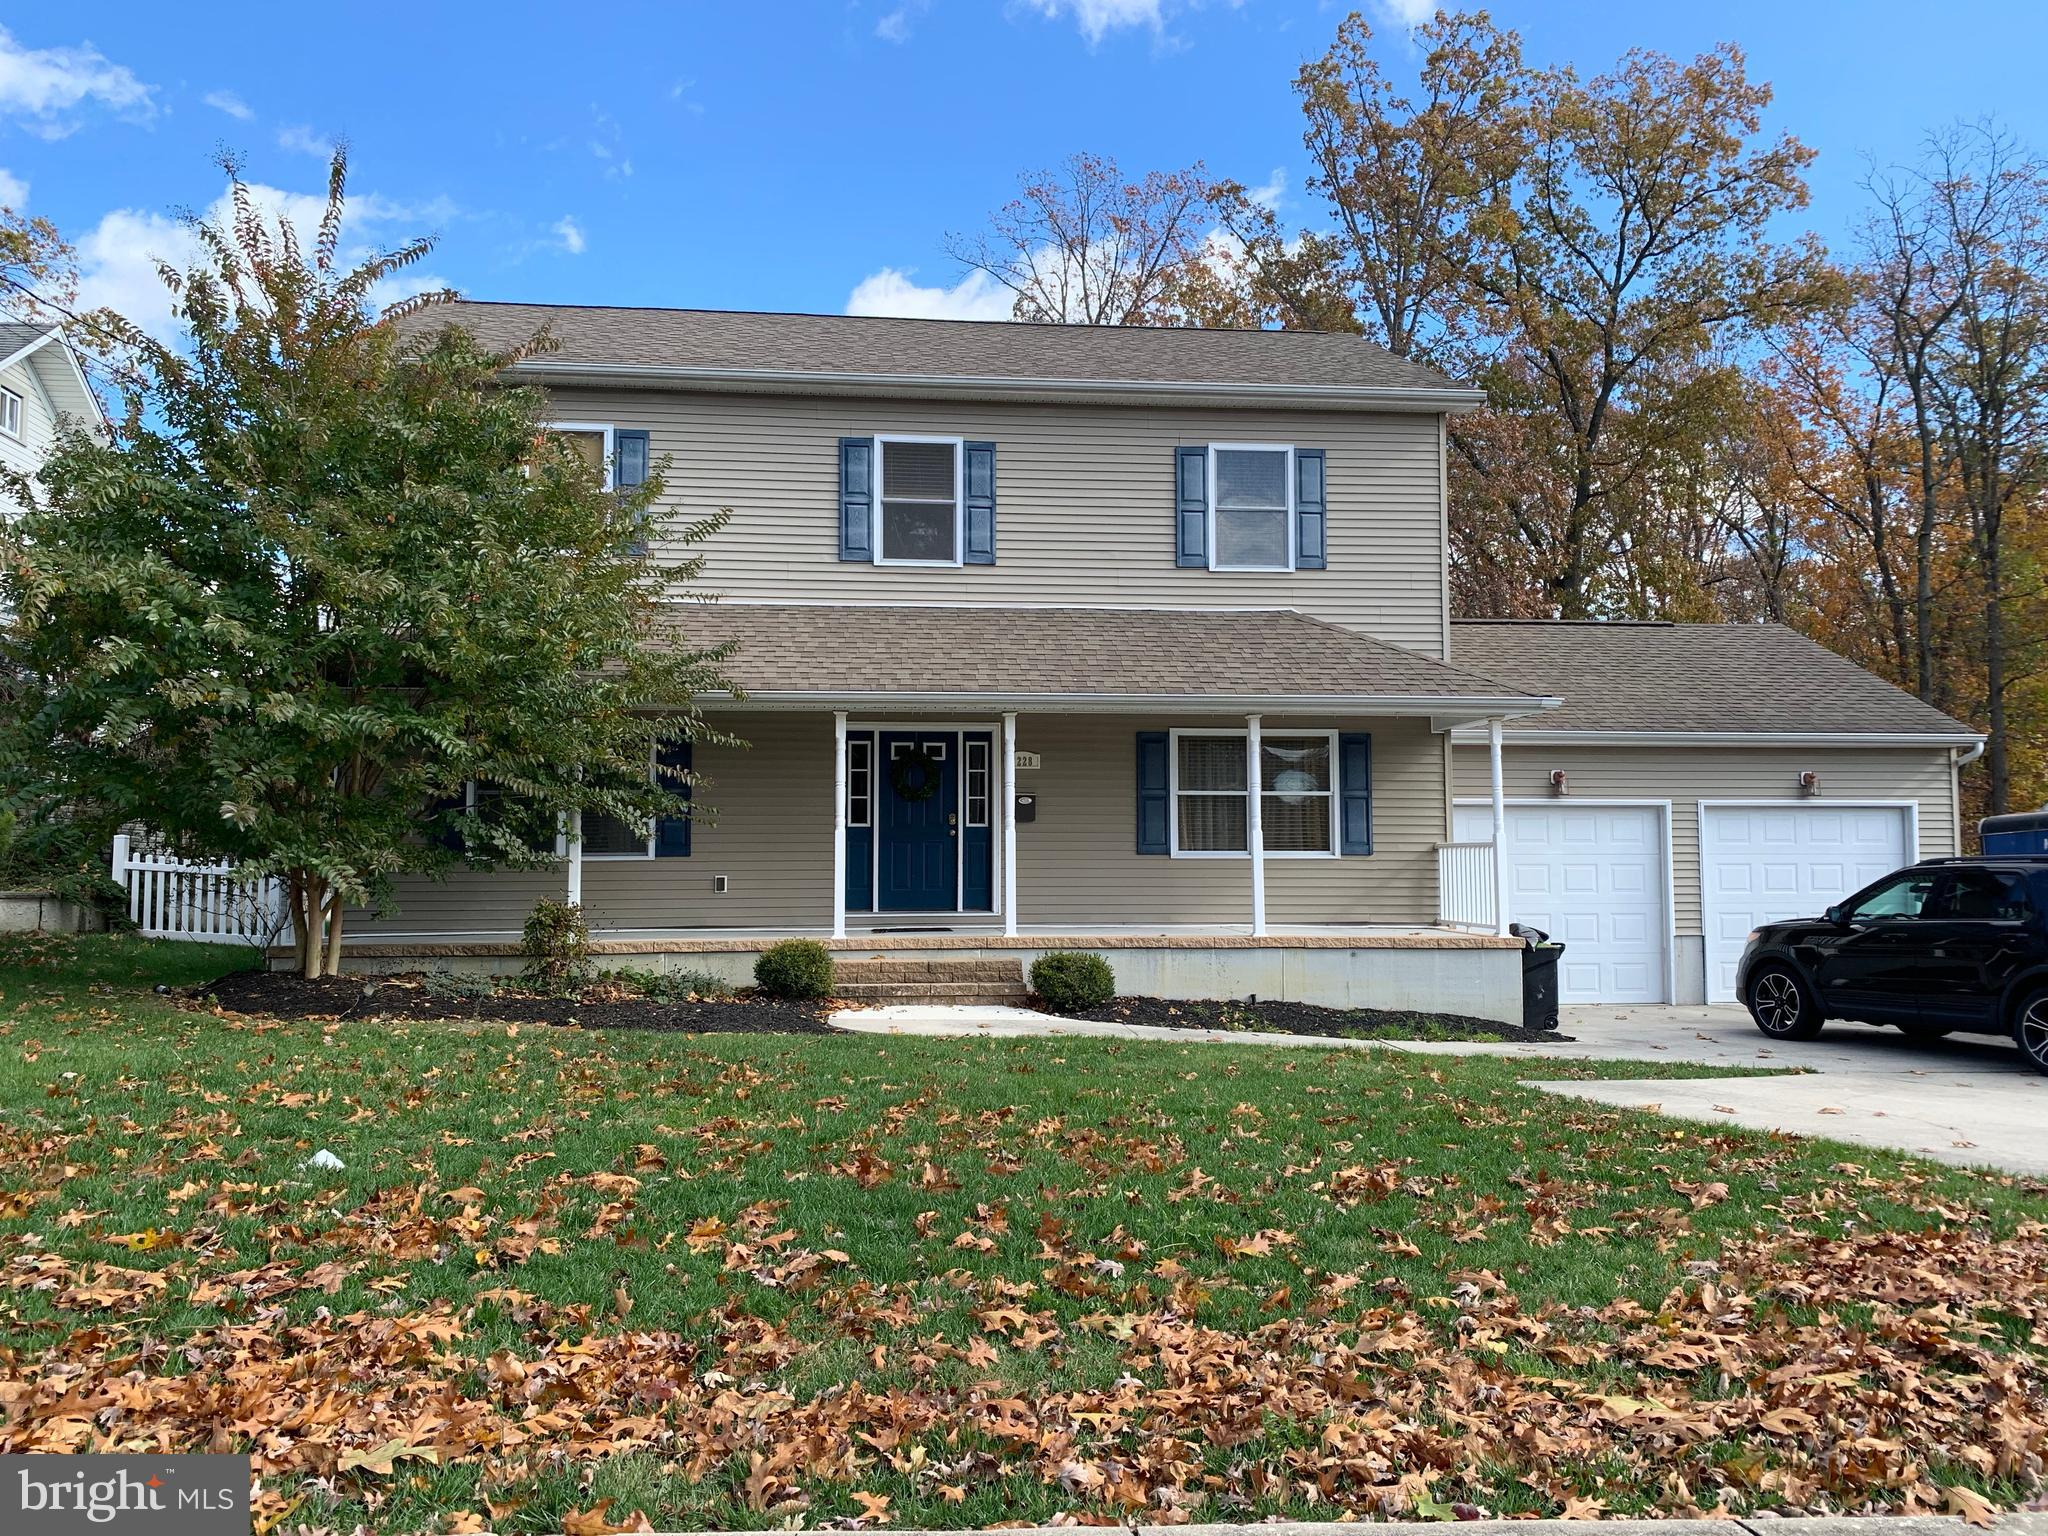 1228 GLASSBORO ROAD, WOODBURY HEIGHTS, NJ 08097